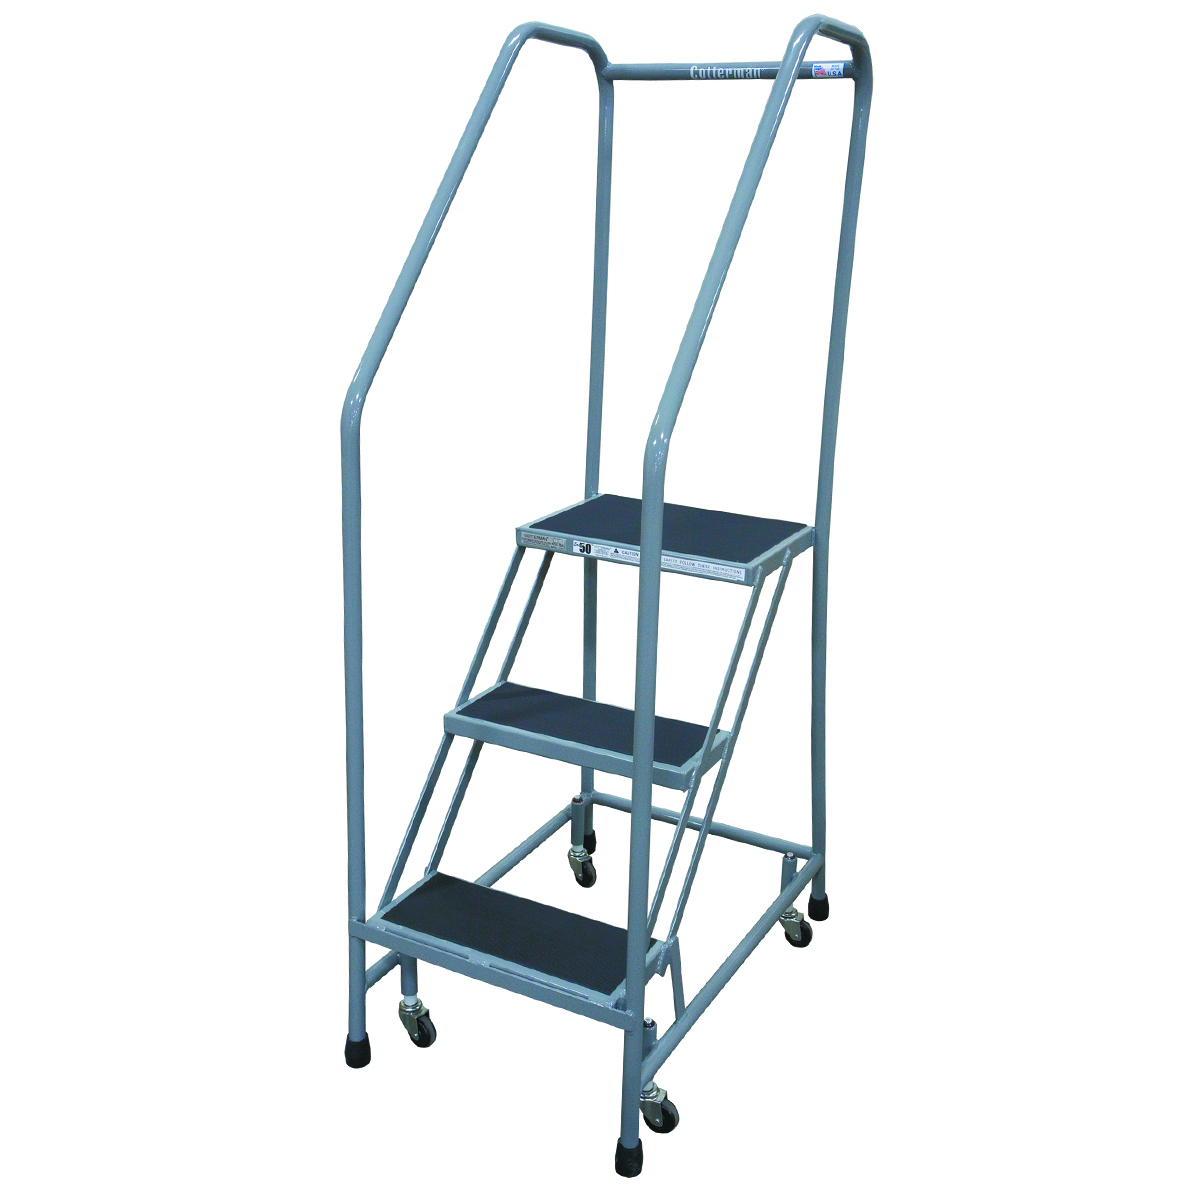 50 Degree Climbing Angle Ladder with 2 Steps and Platform